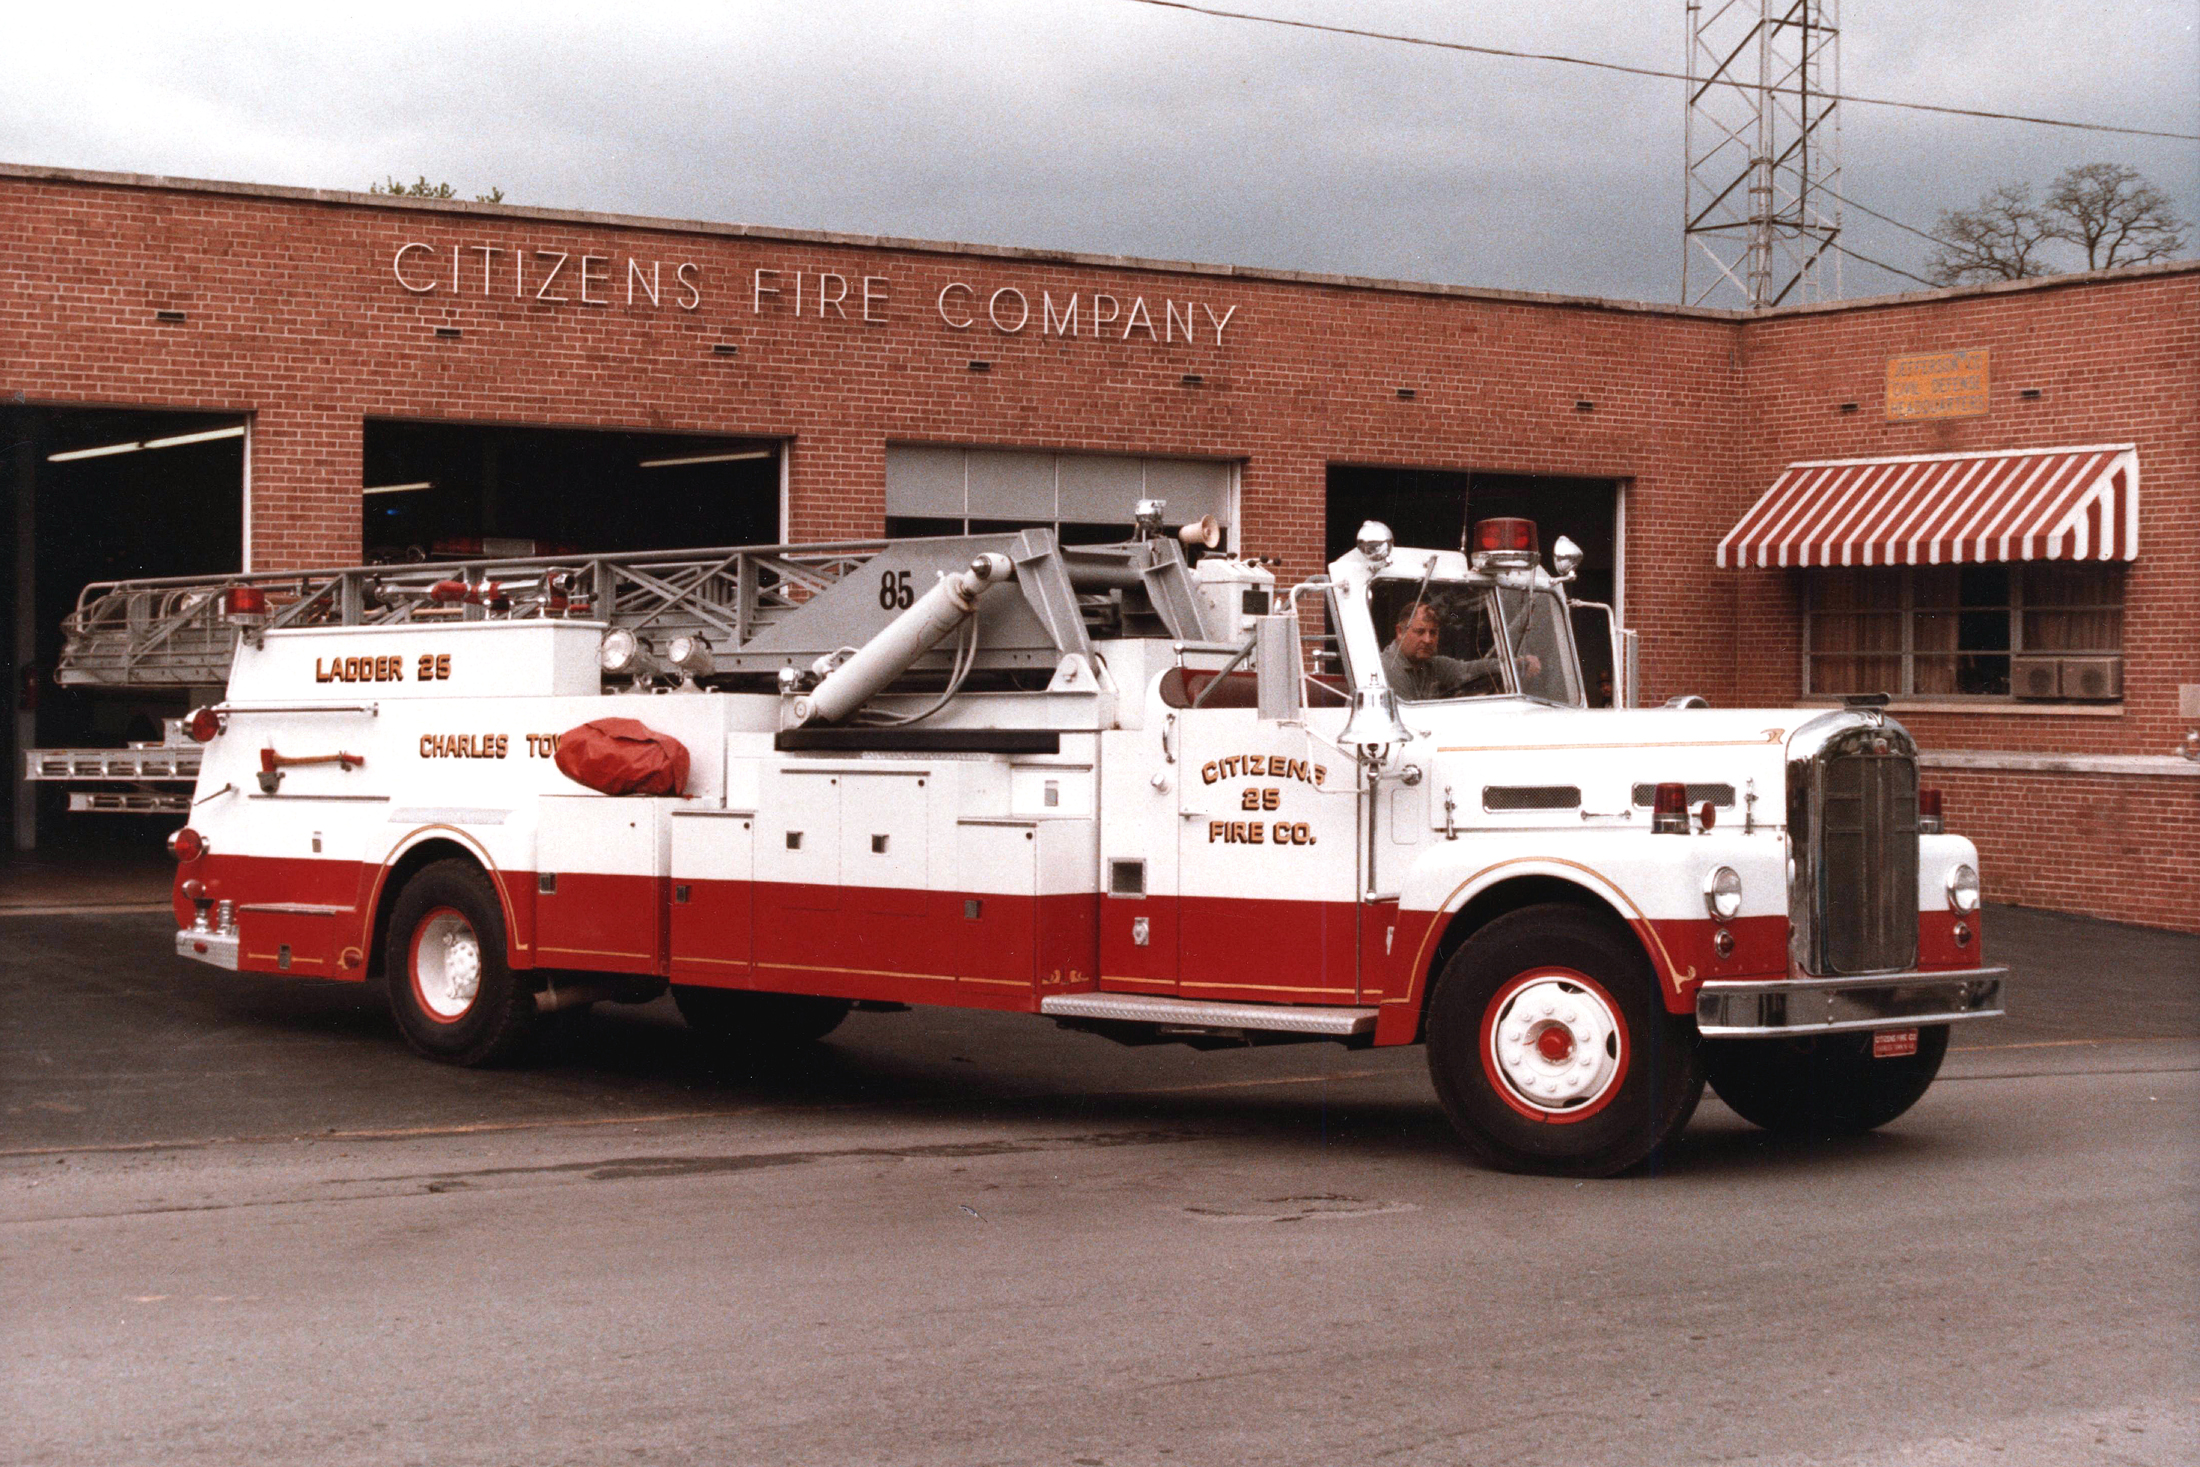 WV, Citizens Volunteer Fire Company